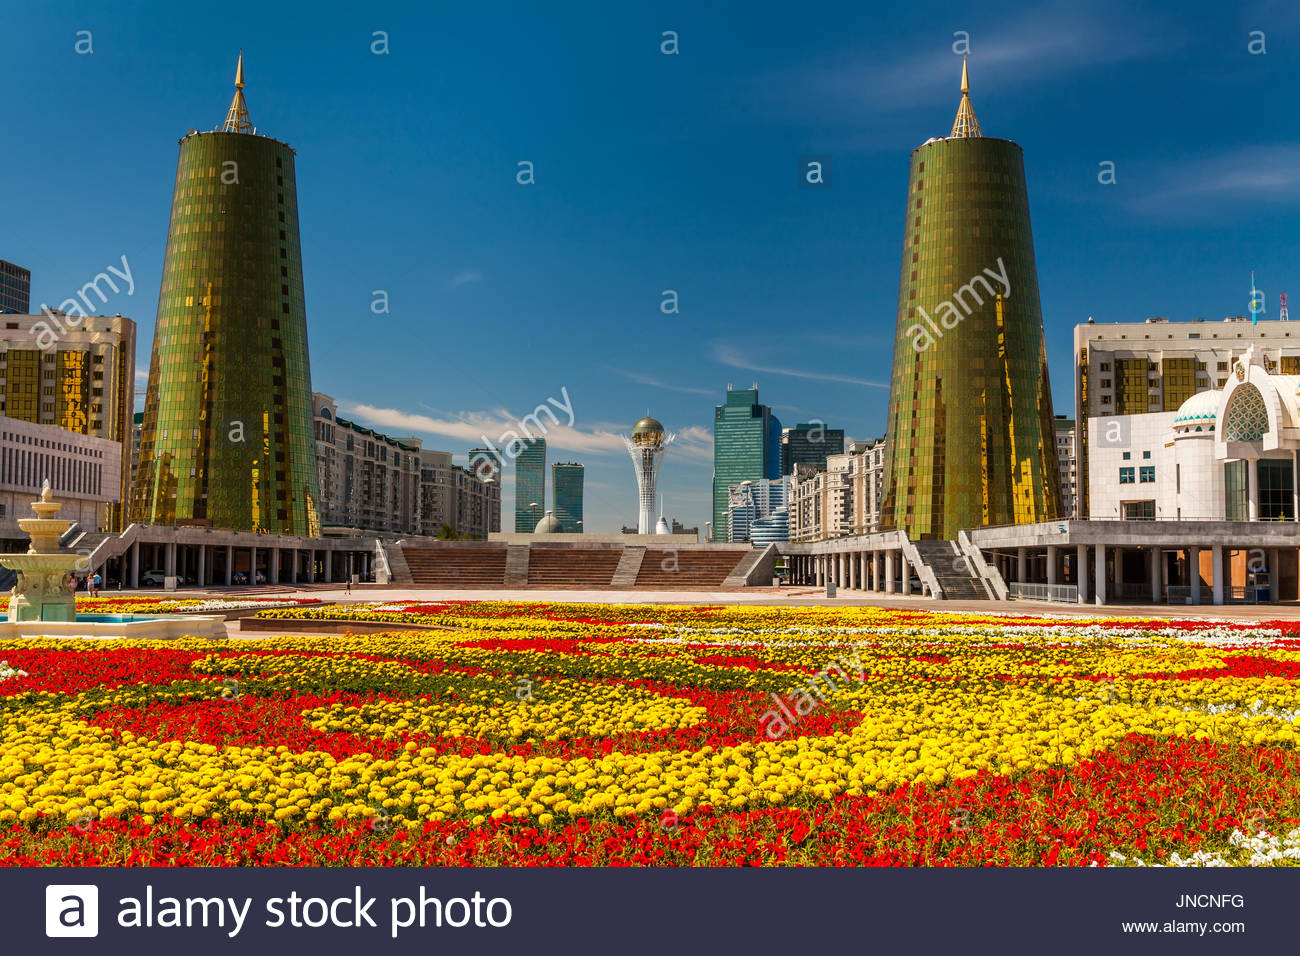 Kazakhstan, Astana City, Parlament - Stock Image